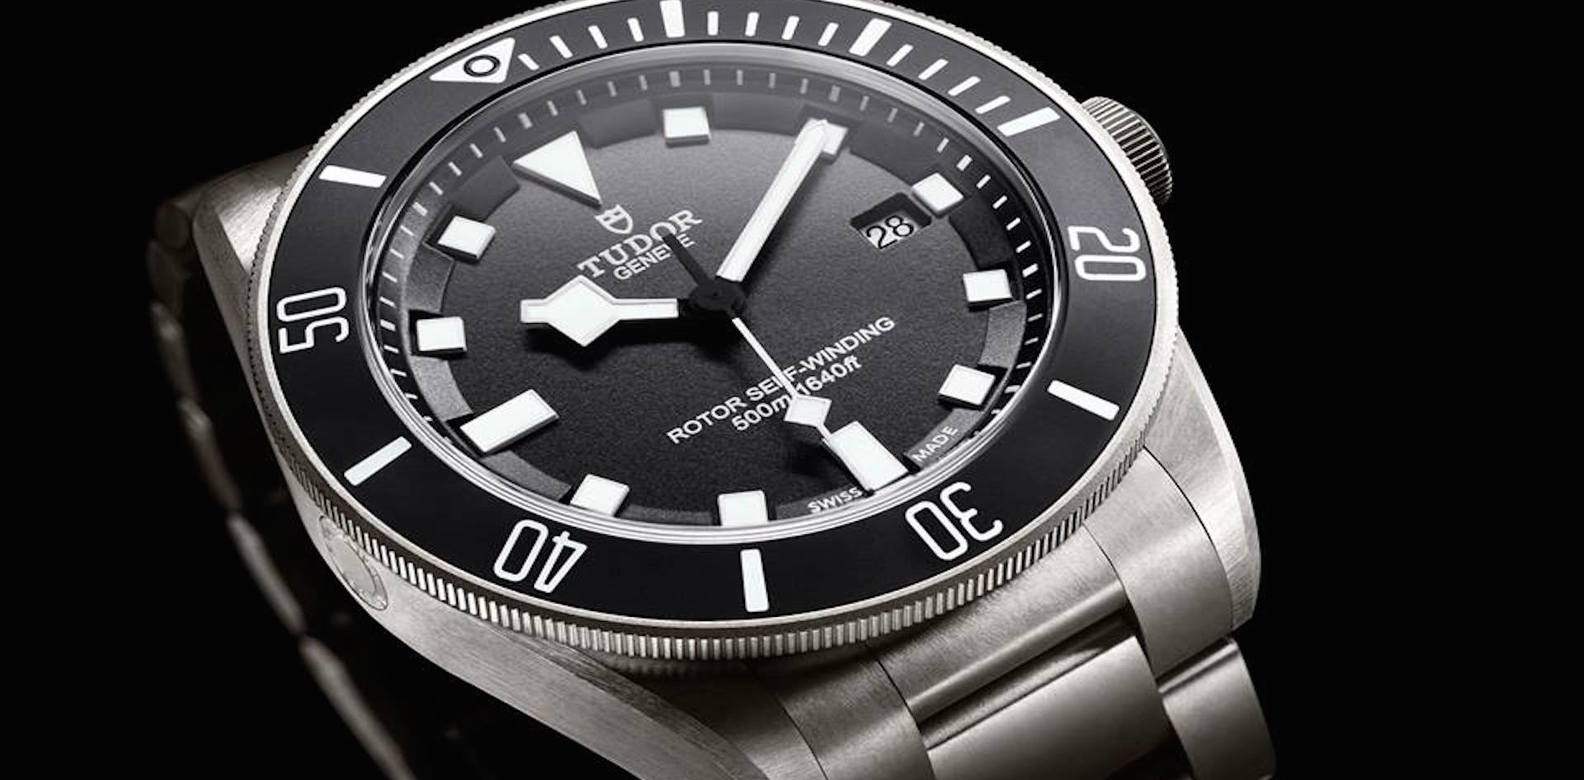 Tudor pelagos wins sports watch prize in geneva philippine tatler for Tudor geneve watches